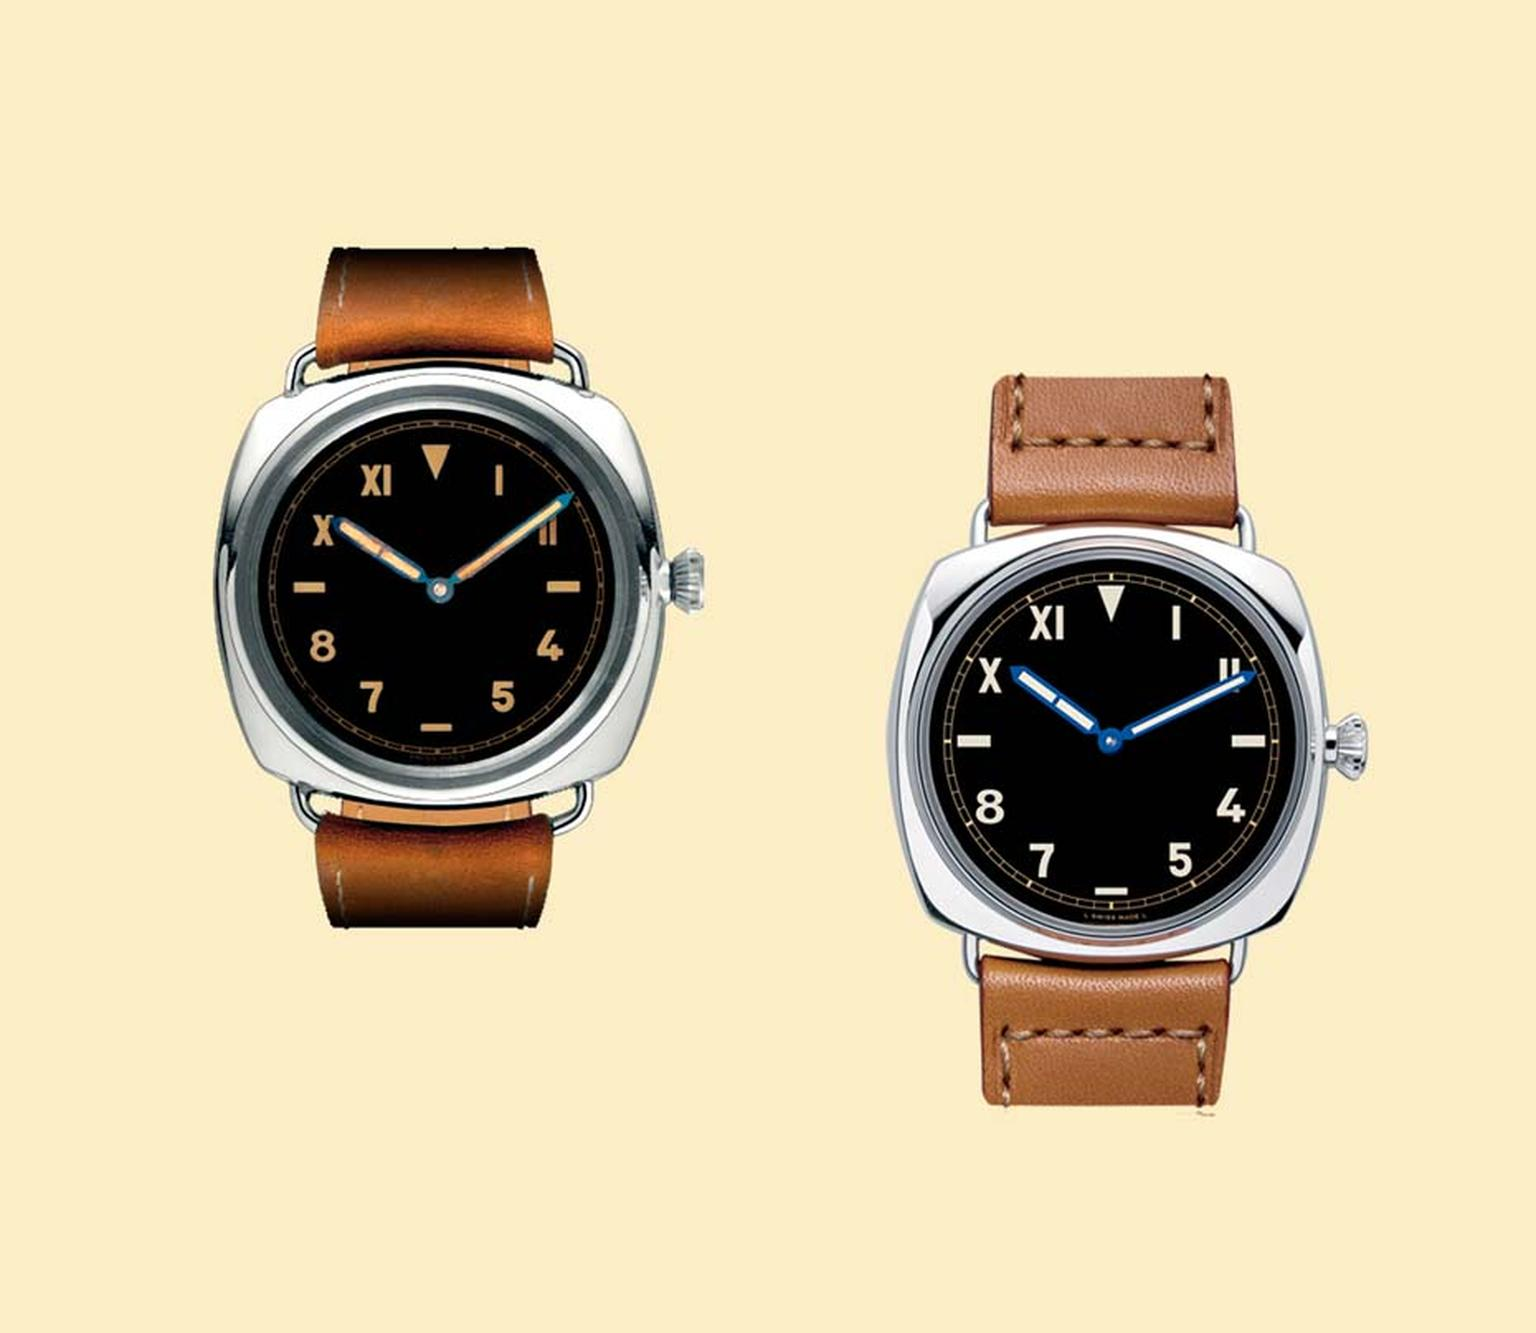 Panerai's iconic Radiomir 1936 model (on left) and a re-edition of the watch launched in 2006 (on right). The ability of the watch to glow in the darkest, murkiest underwater conditions was thanks to the application of a radium paste patented by Panerai.